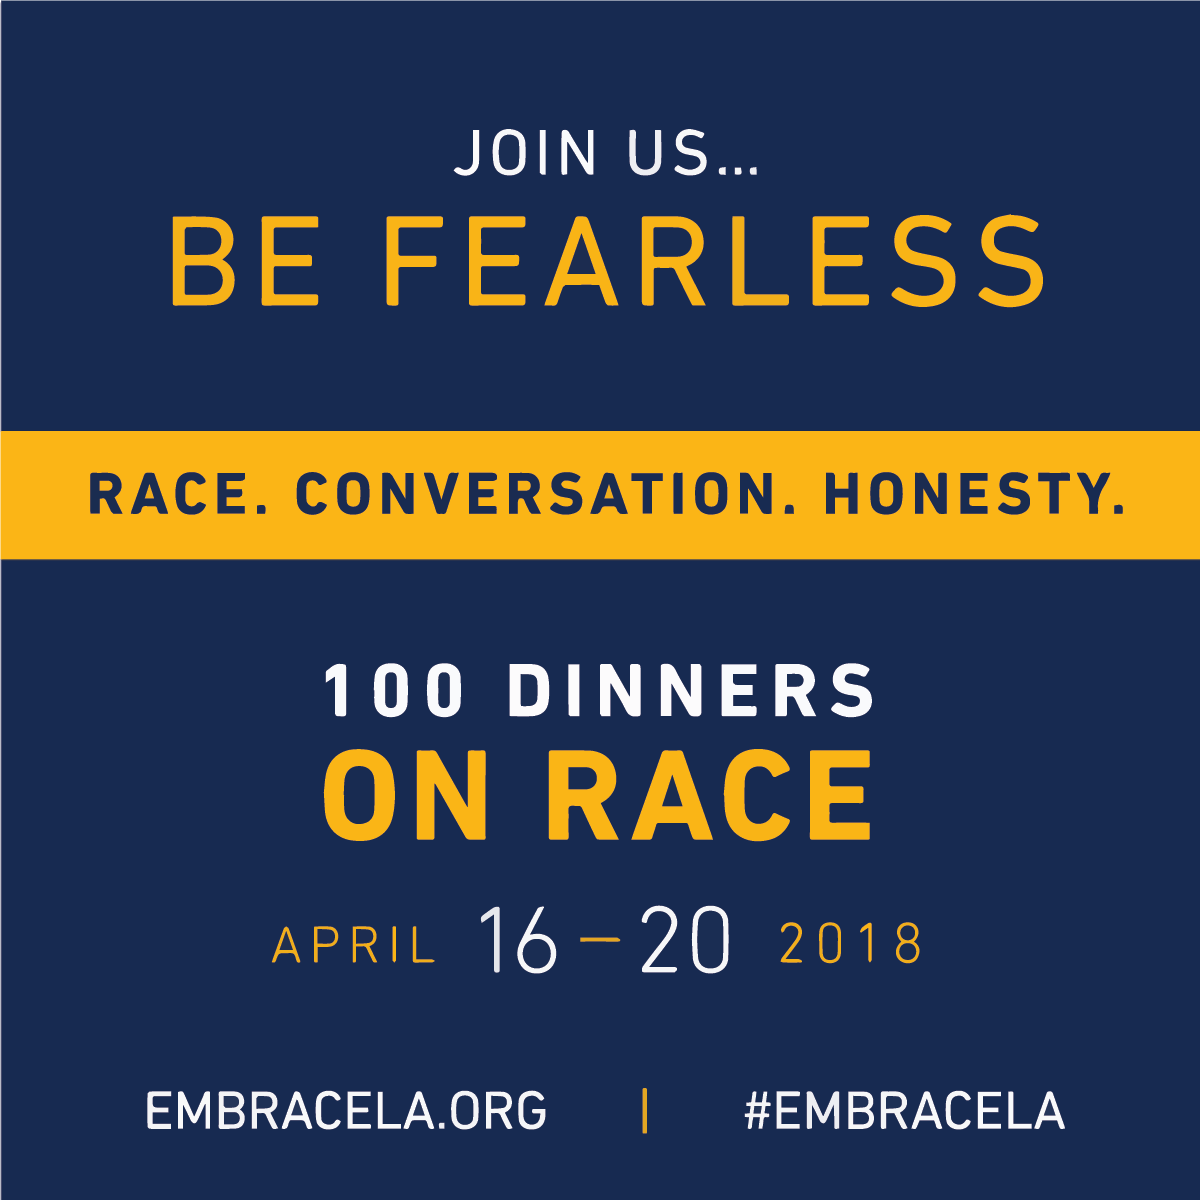 web flyer for embRACELA 100 Dinners About Race event April 2018